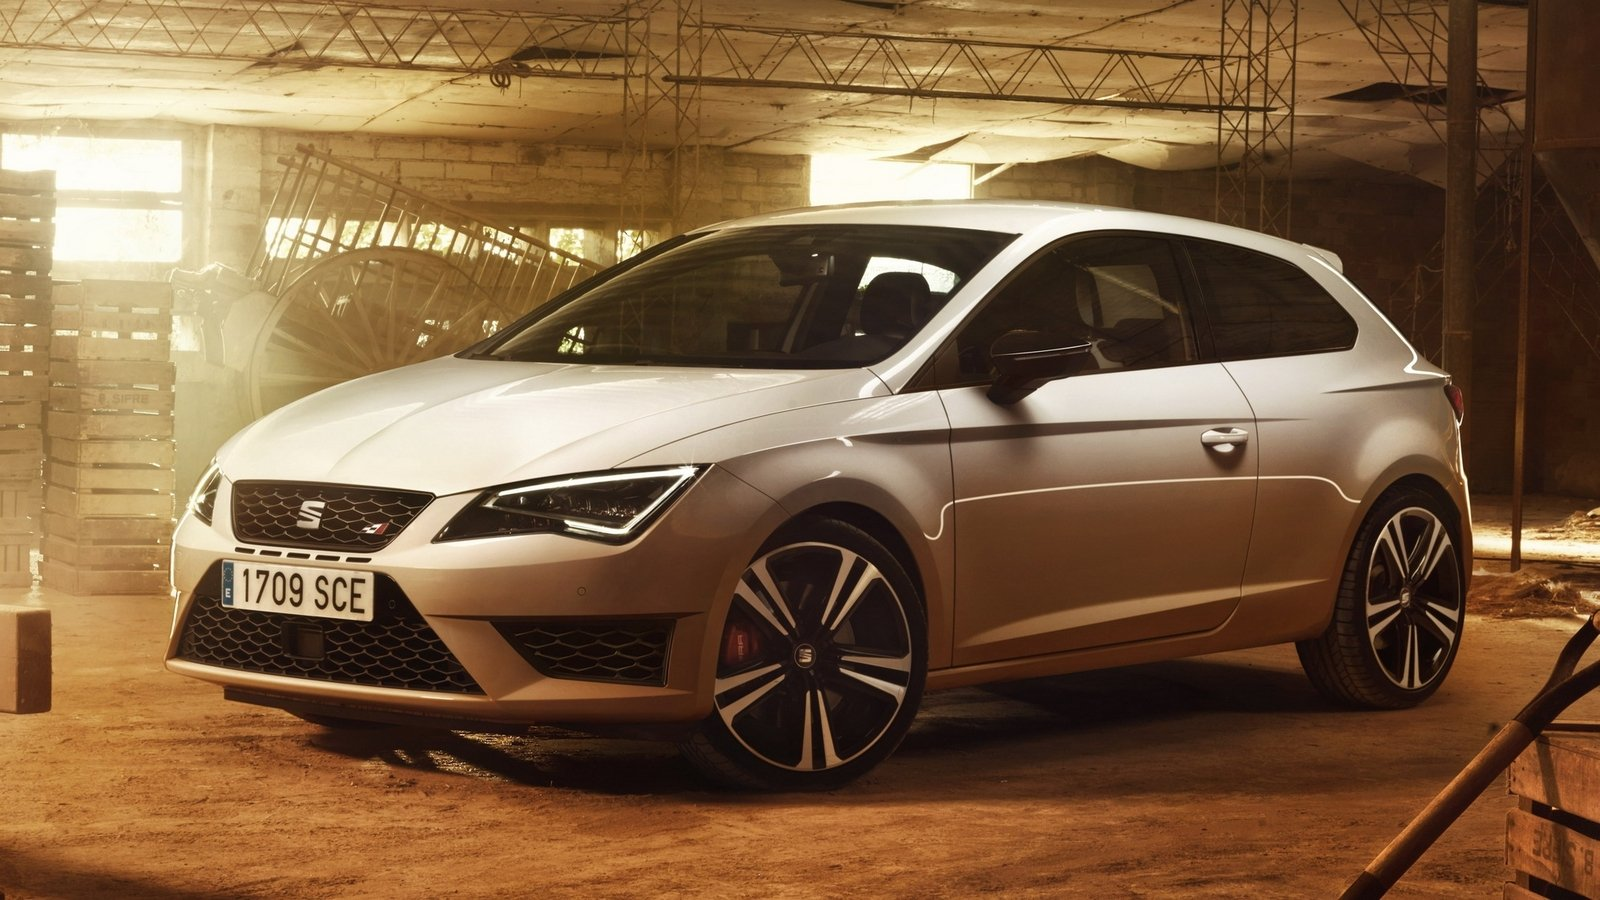 2016 seat leon cupra 290 picture 645624 car review top speed. Black Bedroom Furniture Sets. Home Design Ideas